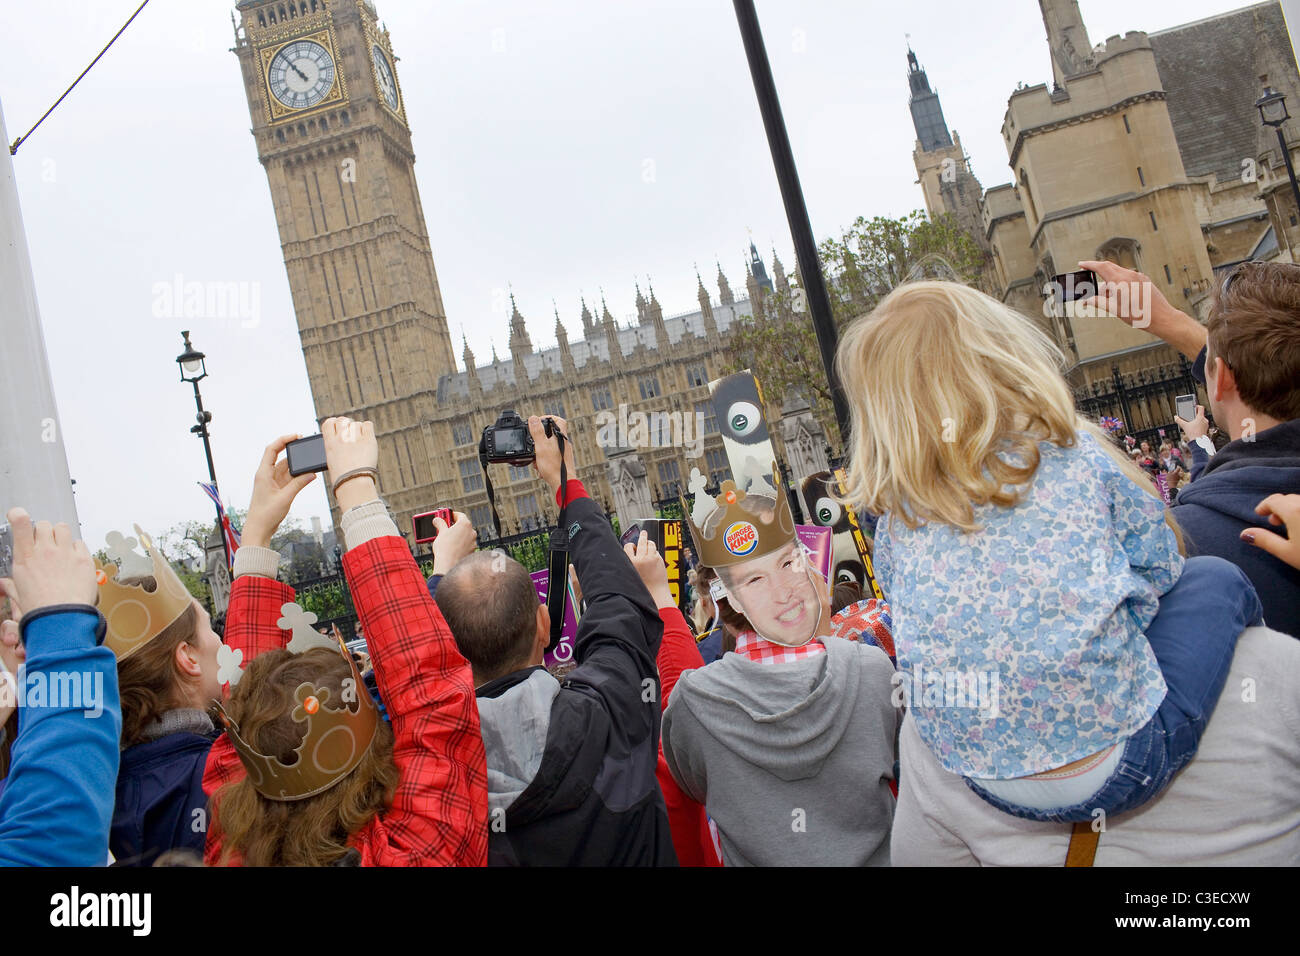 Royal supporters opposite Big Ben. Stock Photo